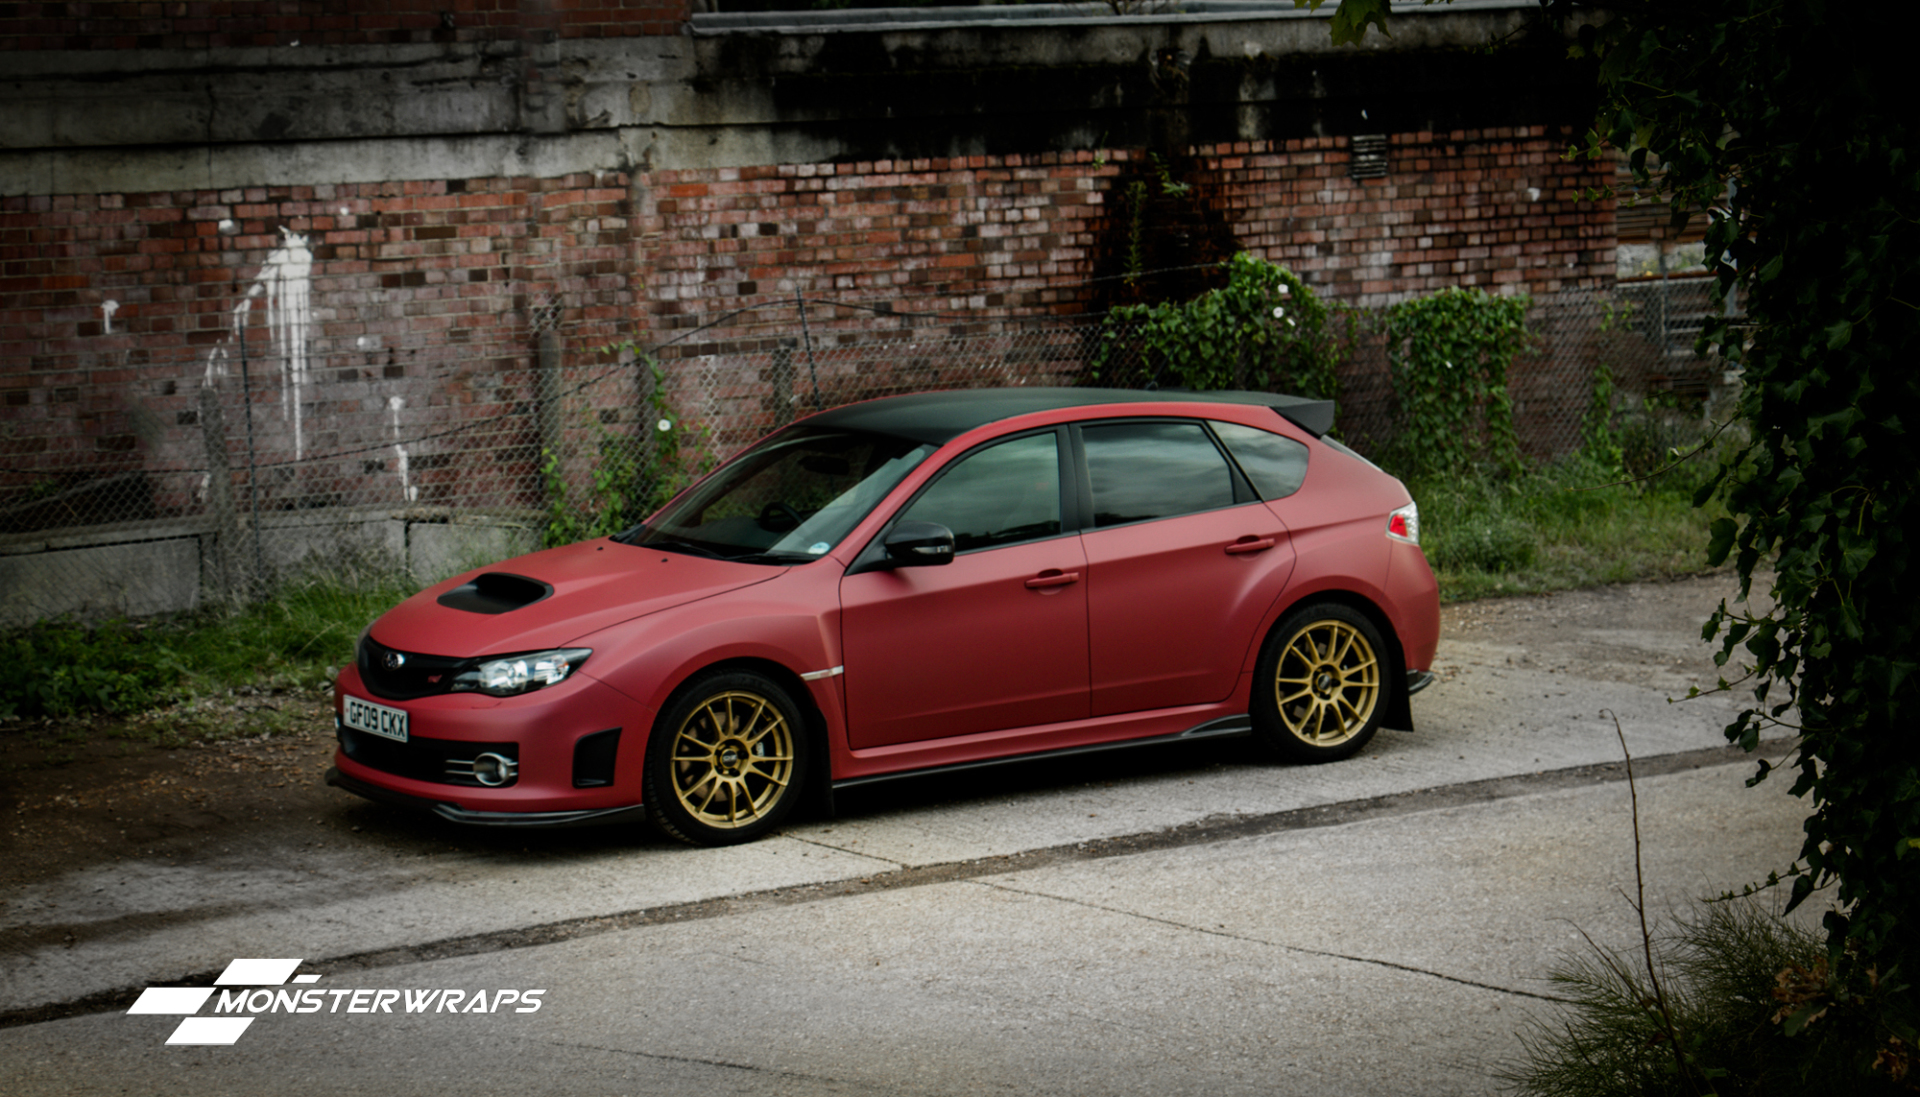 Subaru Impreza Wrx Matte Metallic Red Full Wrap